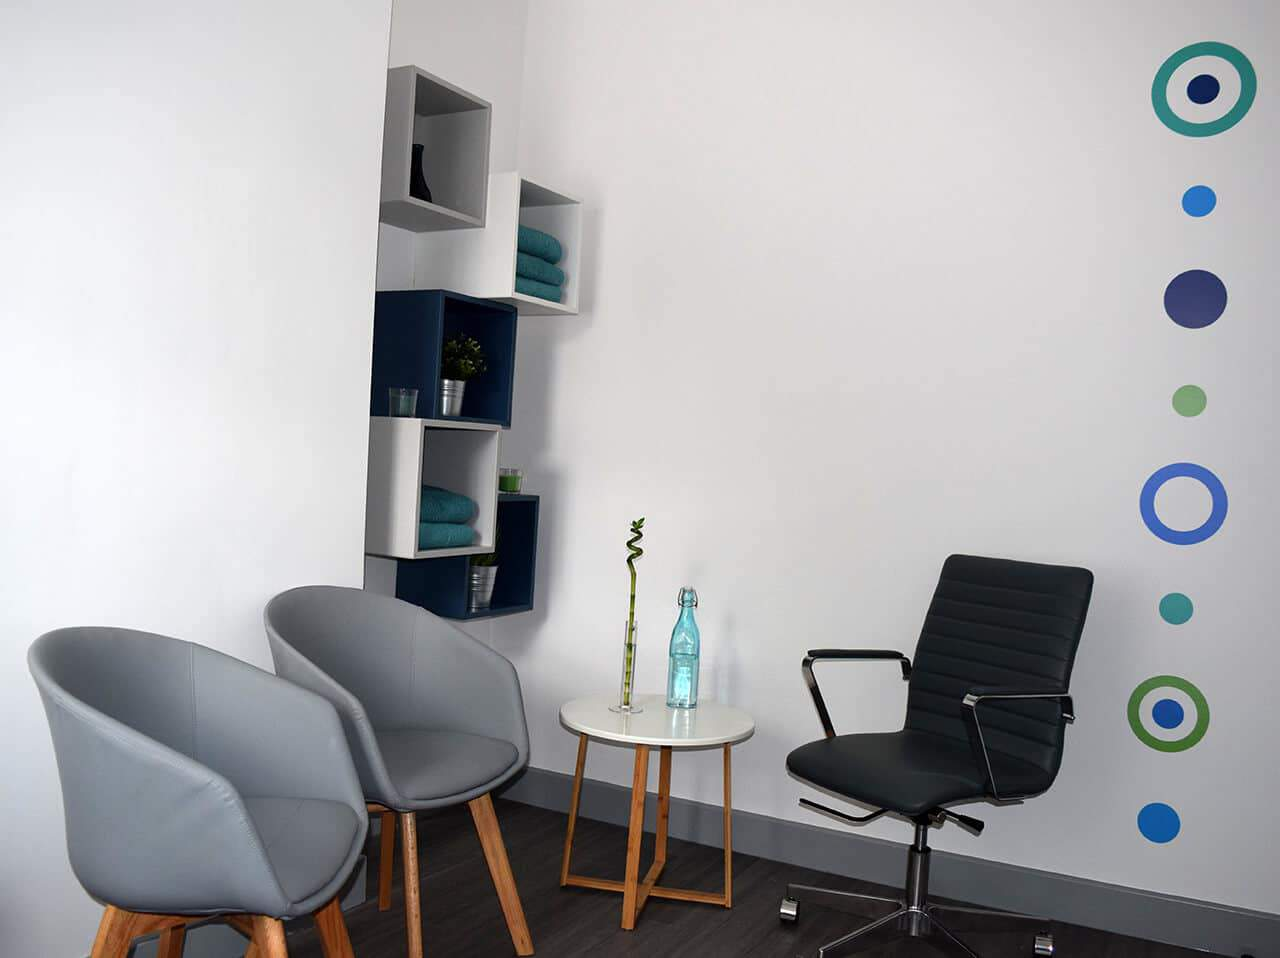 Counselling room at Health Space 307